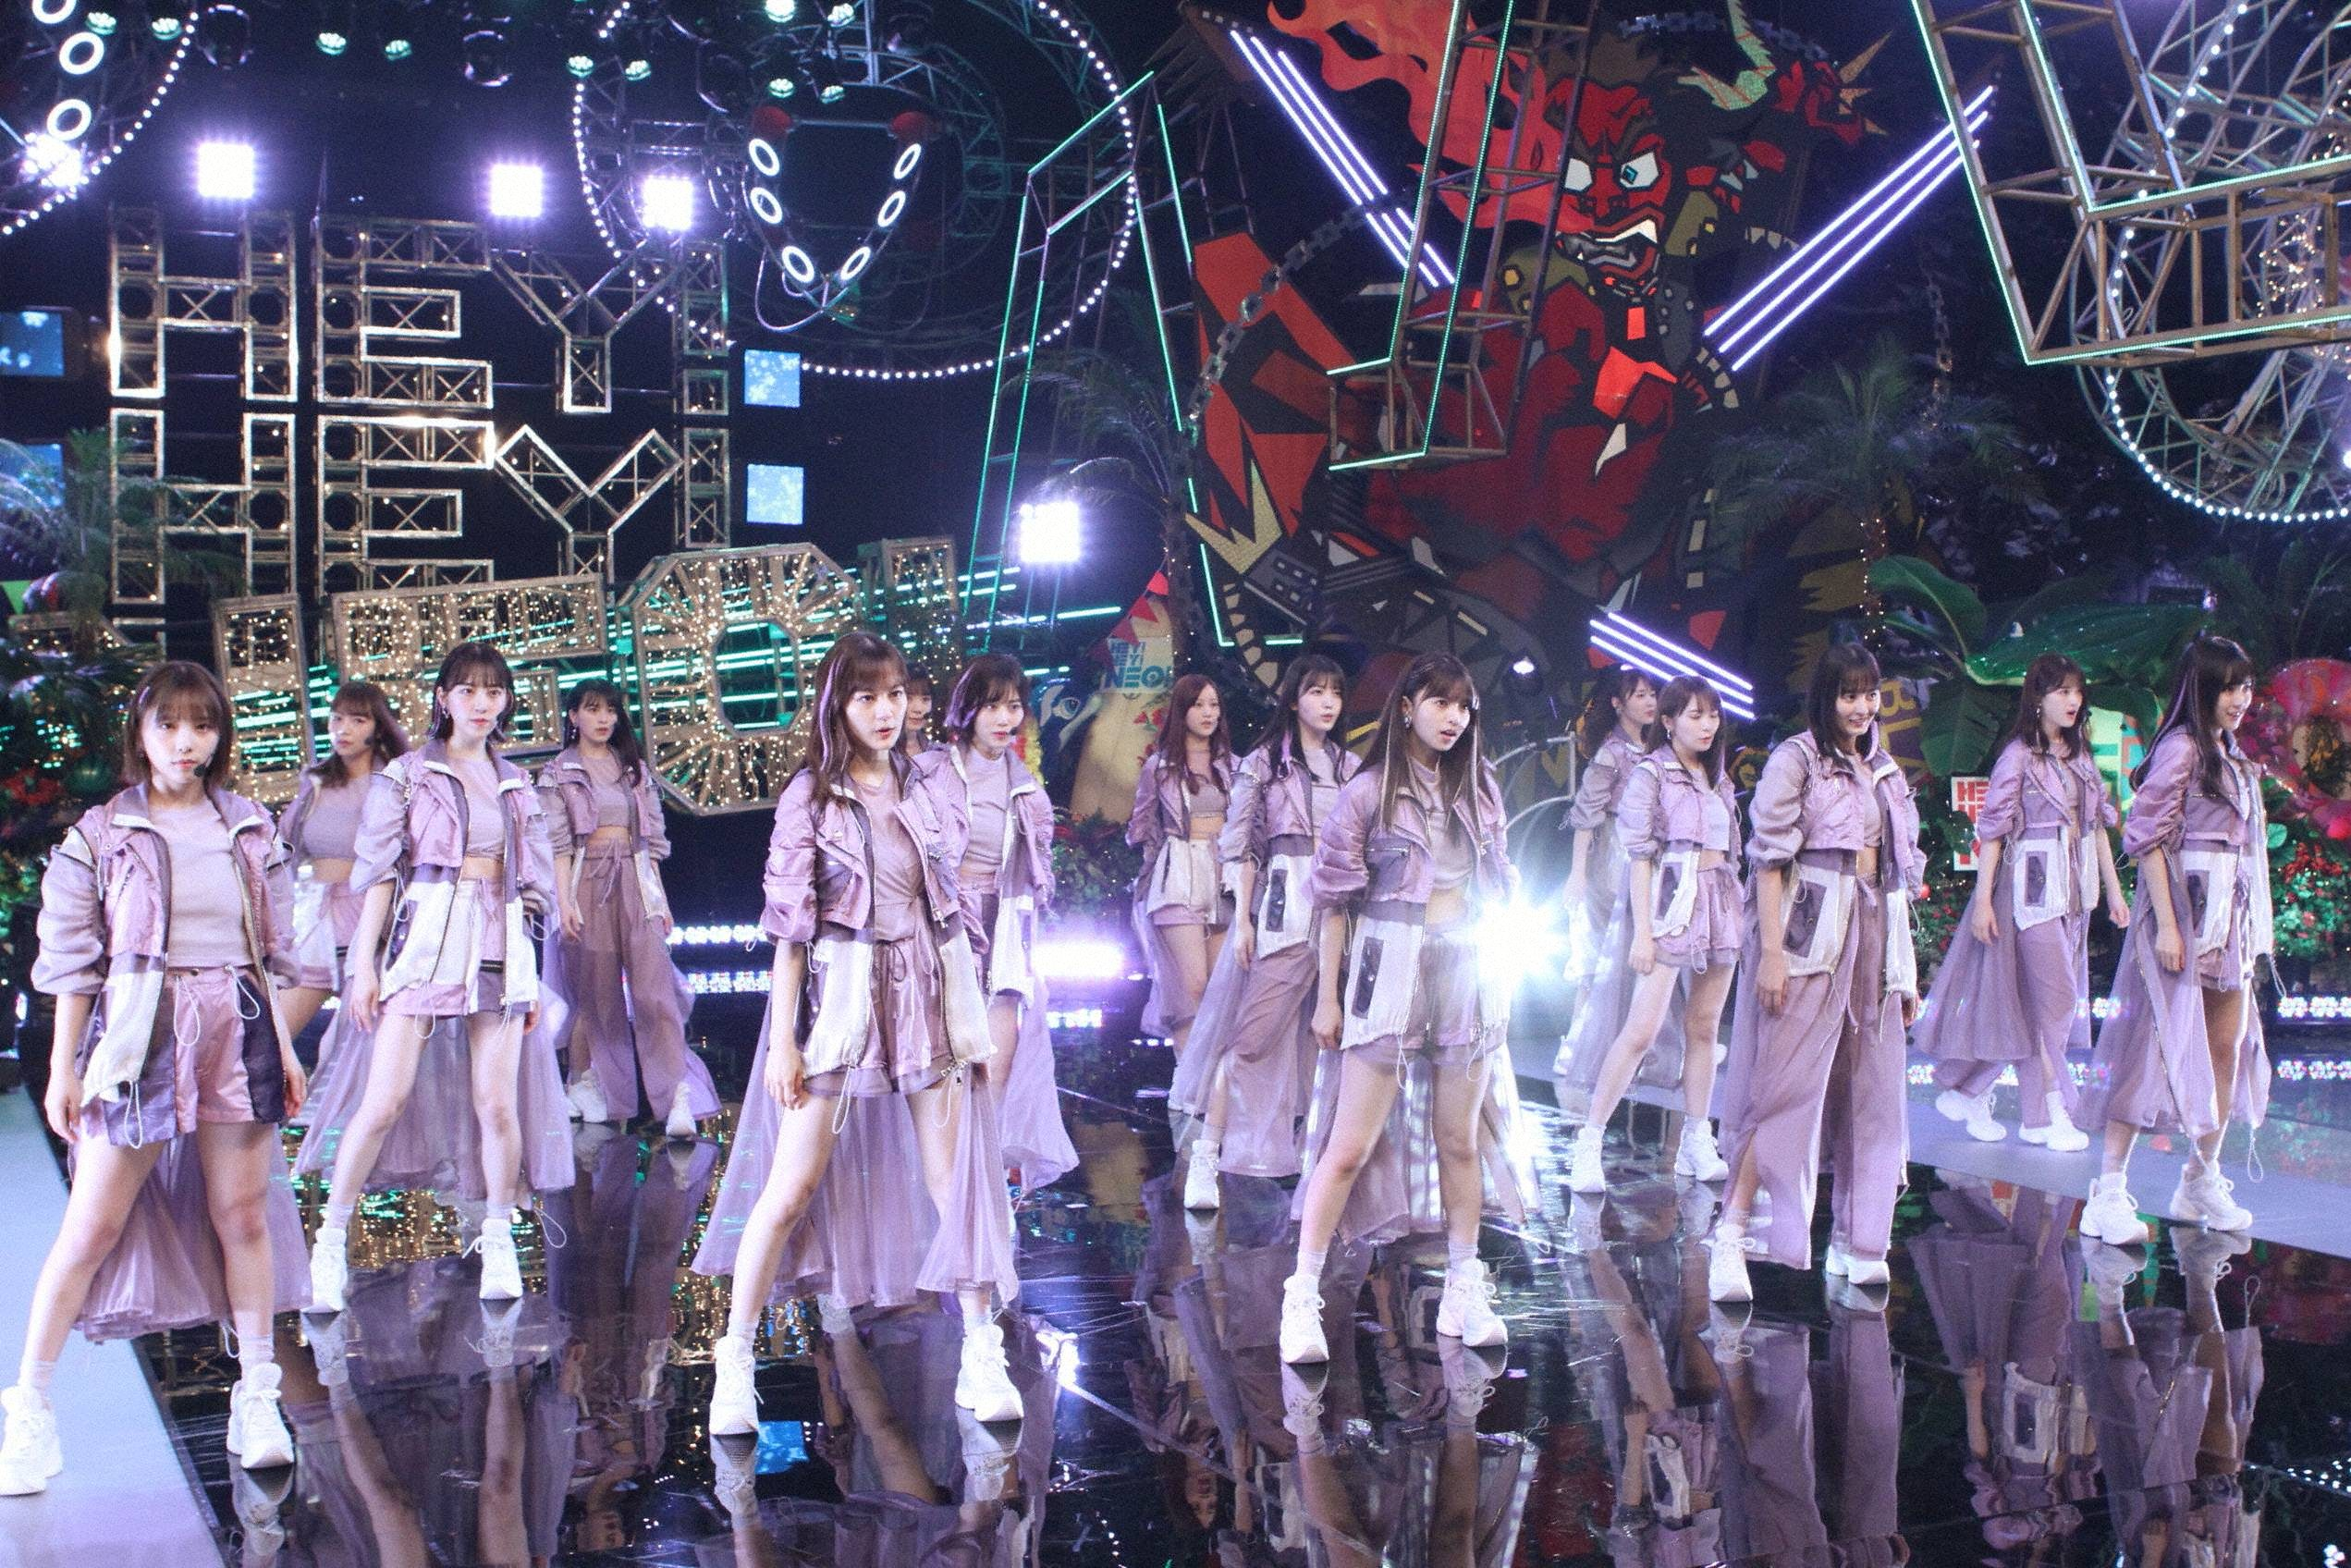 『HEY!HEY!NEO! MUSIC CHAMP』に出演の乃木坂46